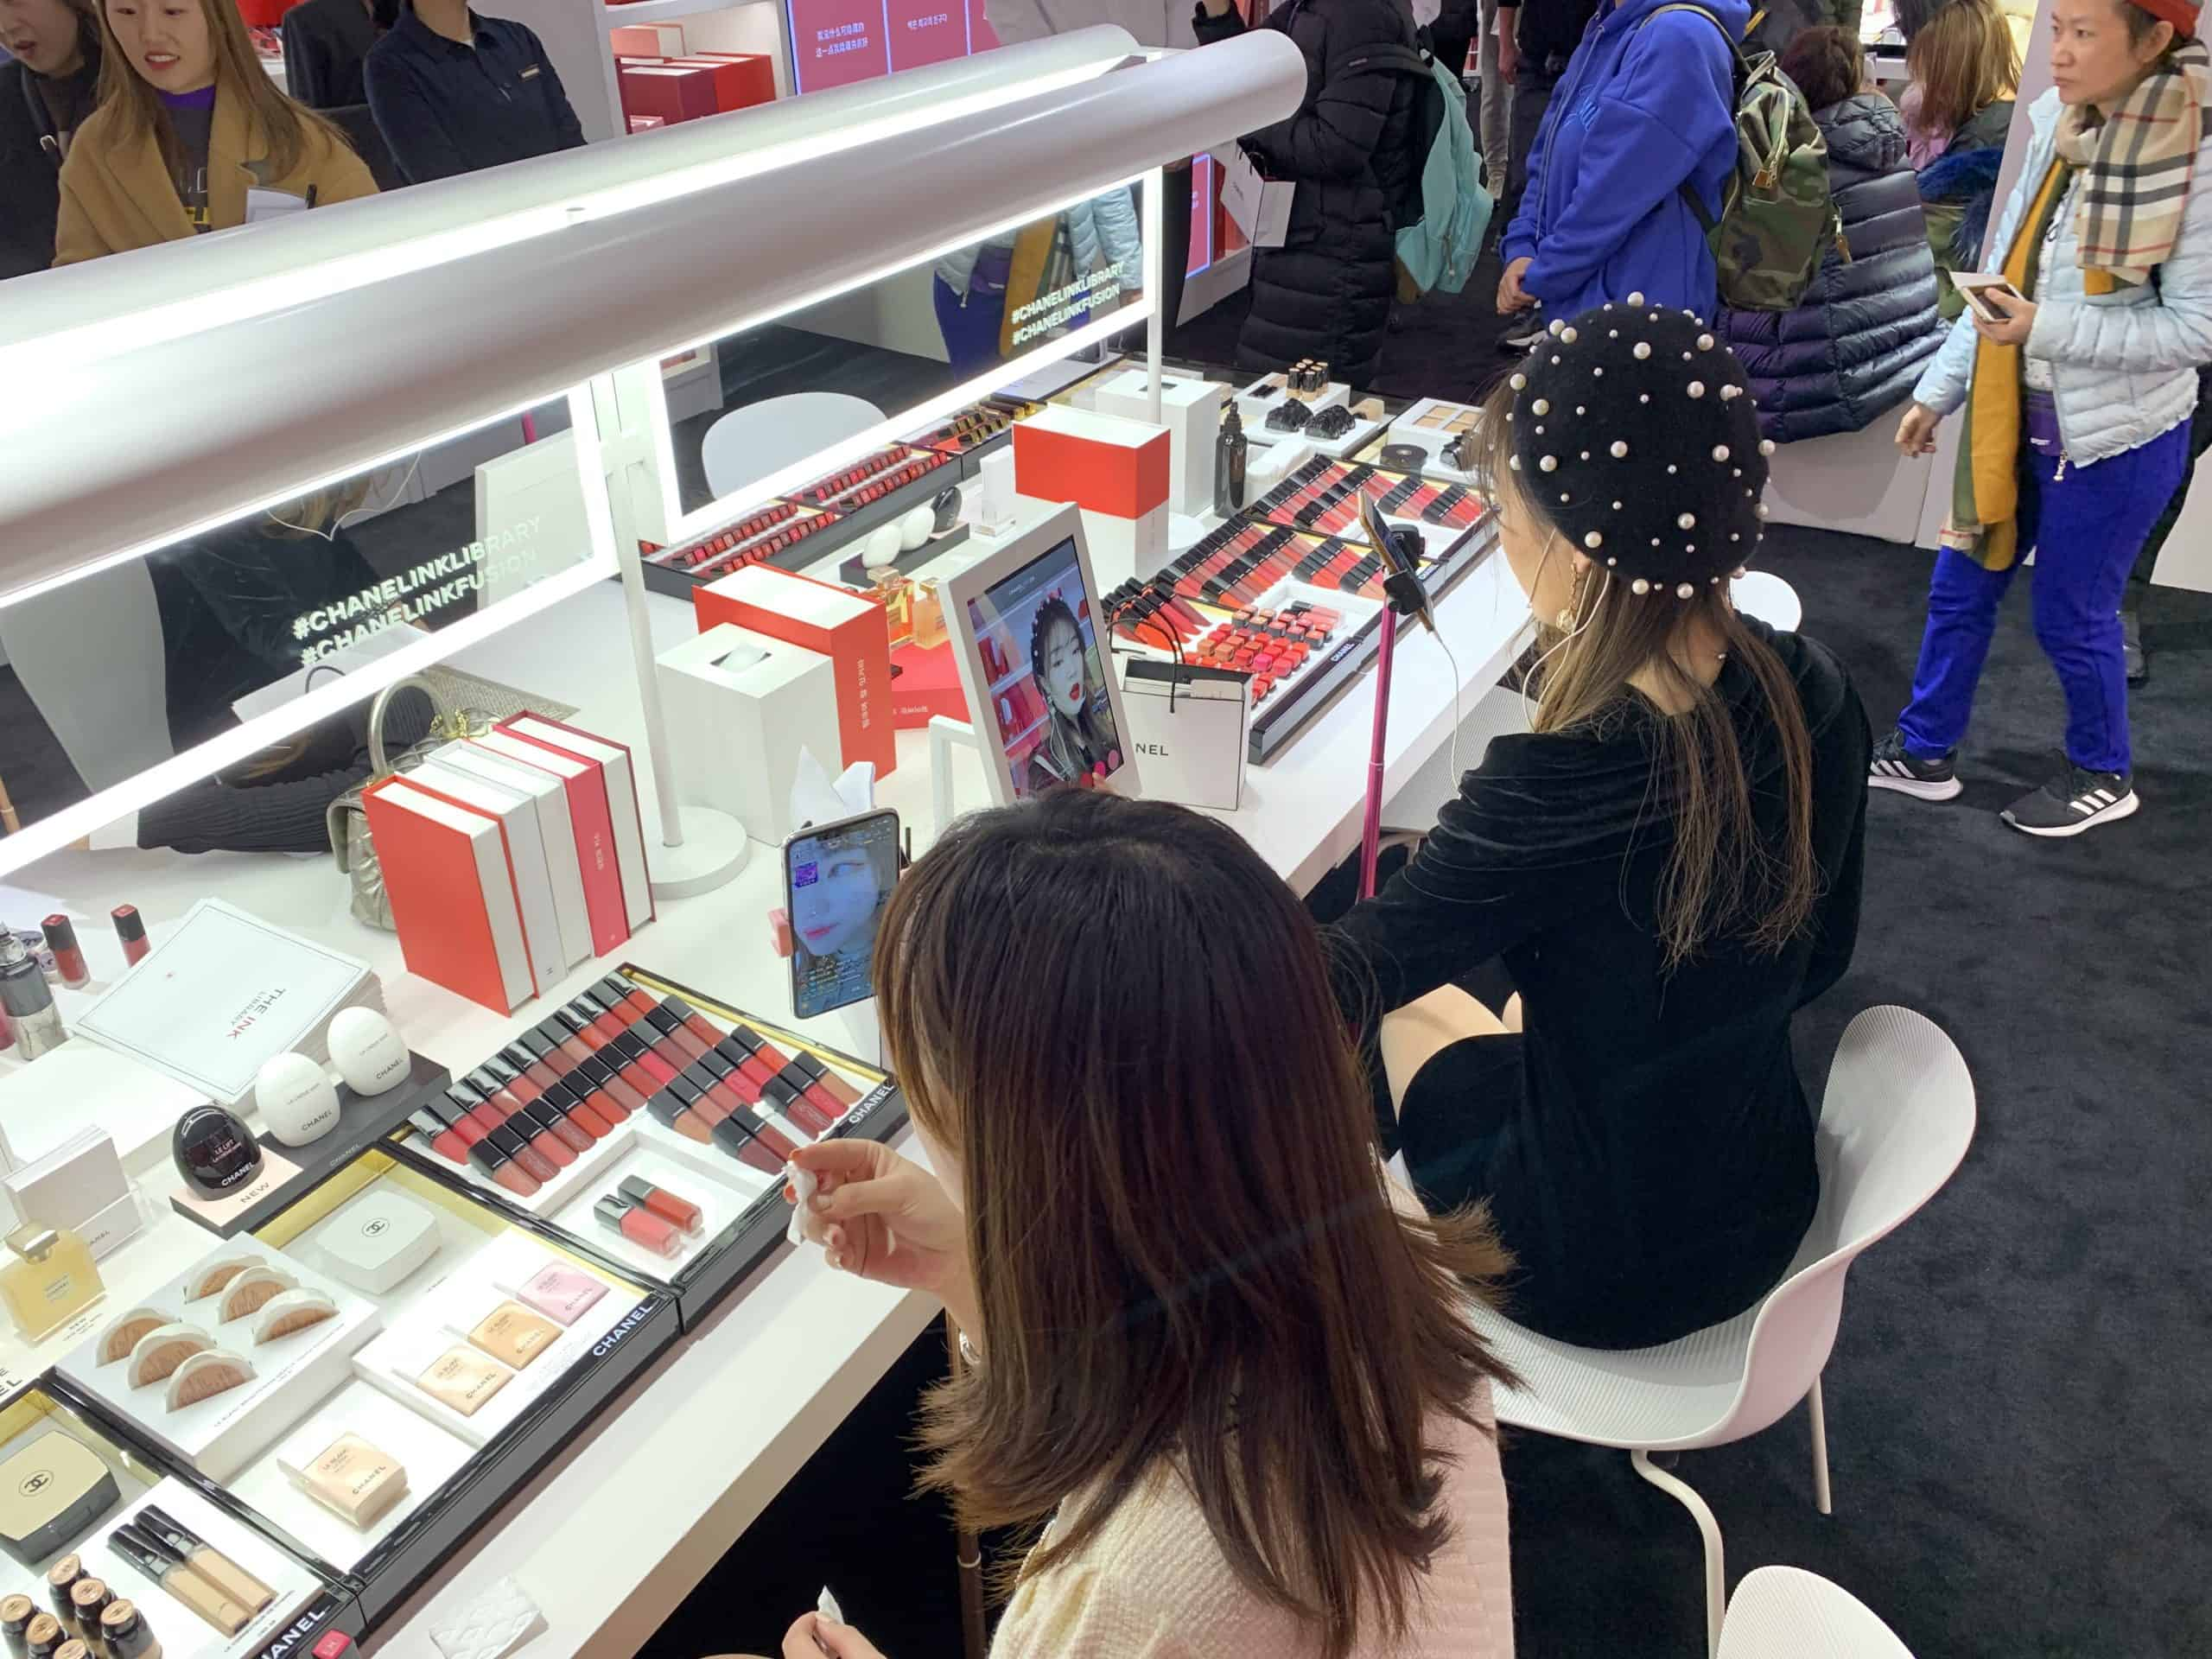 Lotte Duty Free hosts Chanel Ink Library pop-up event in Seoul